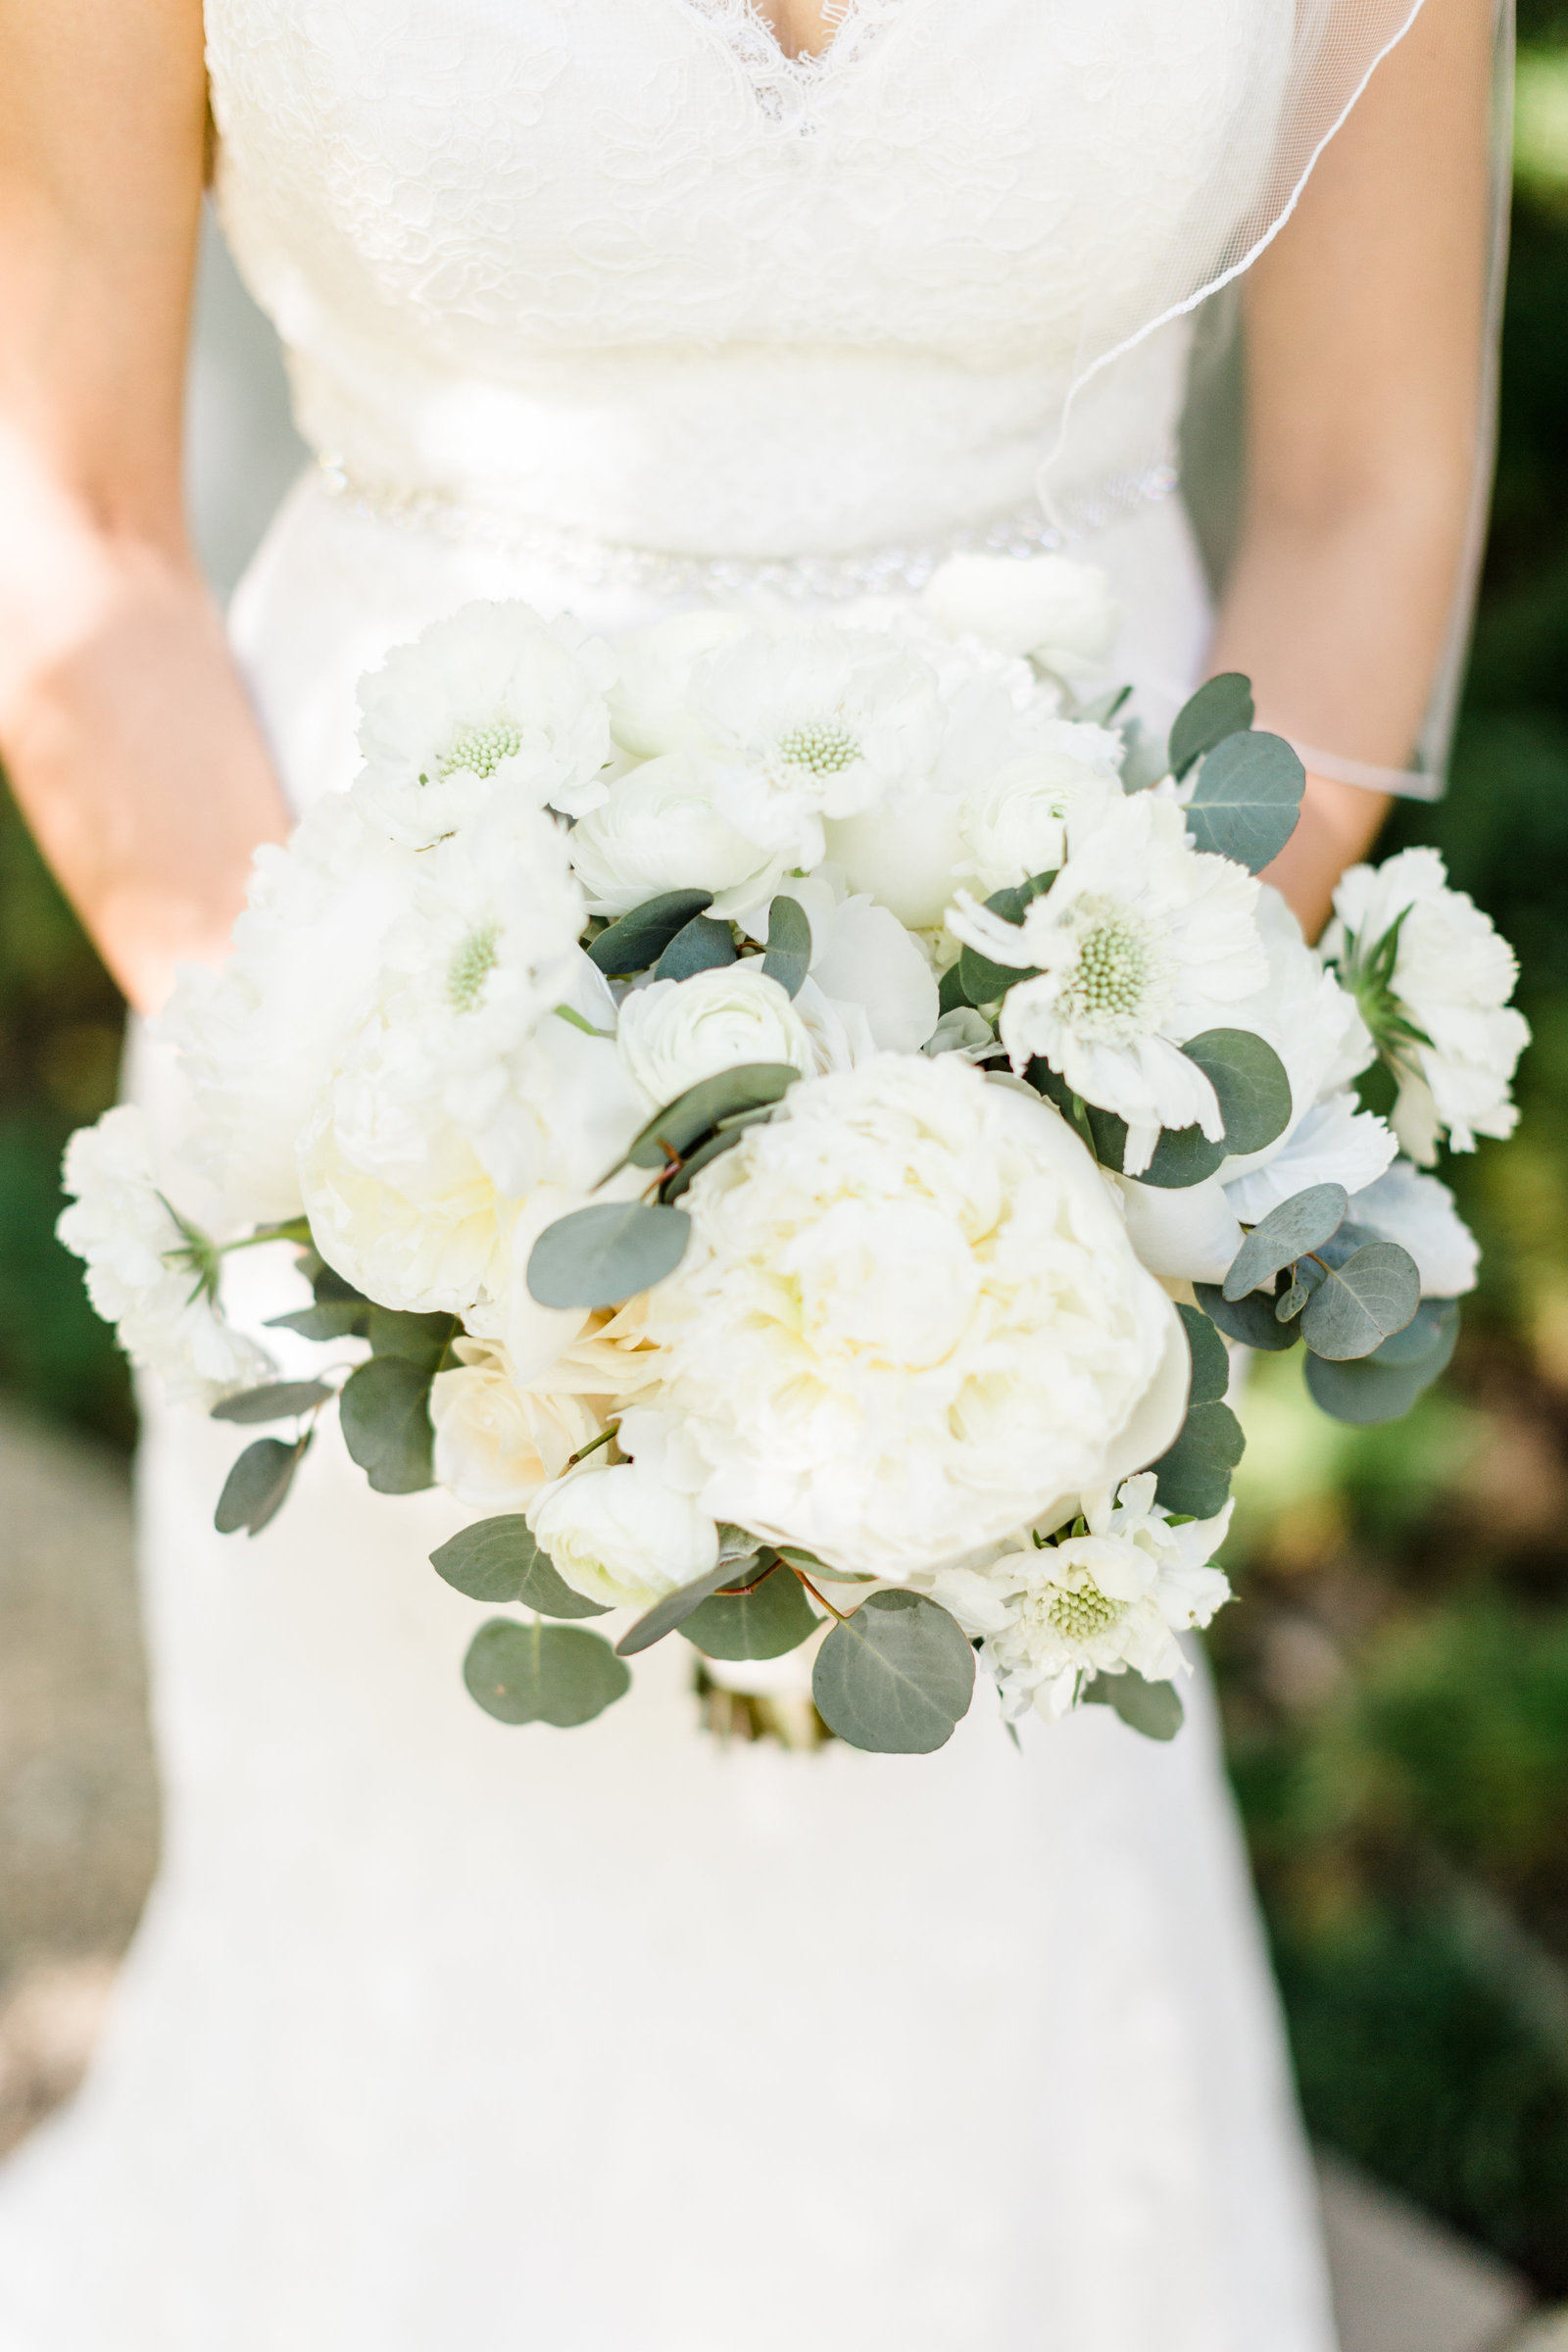 White Peony Bridal Bouquet with Eucalyptus